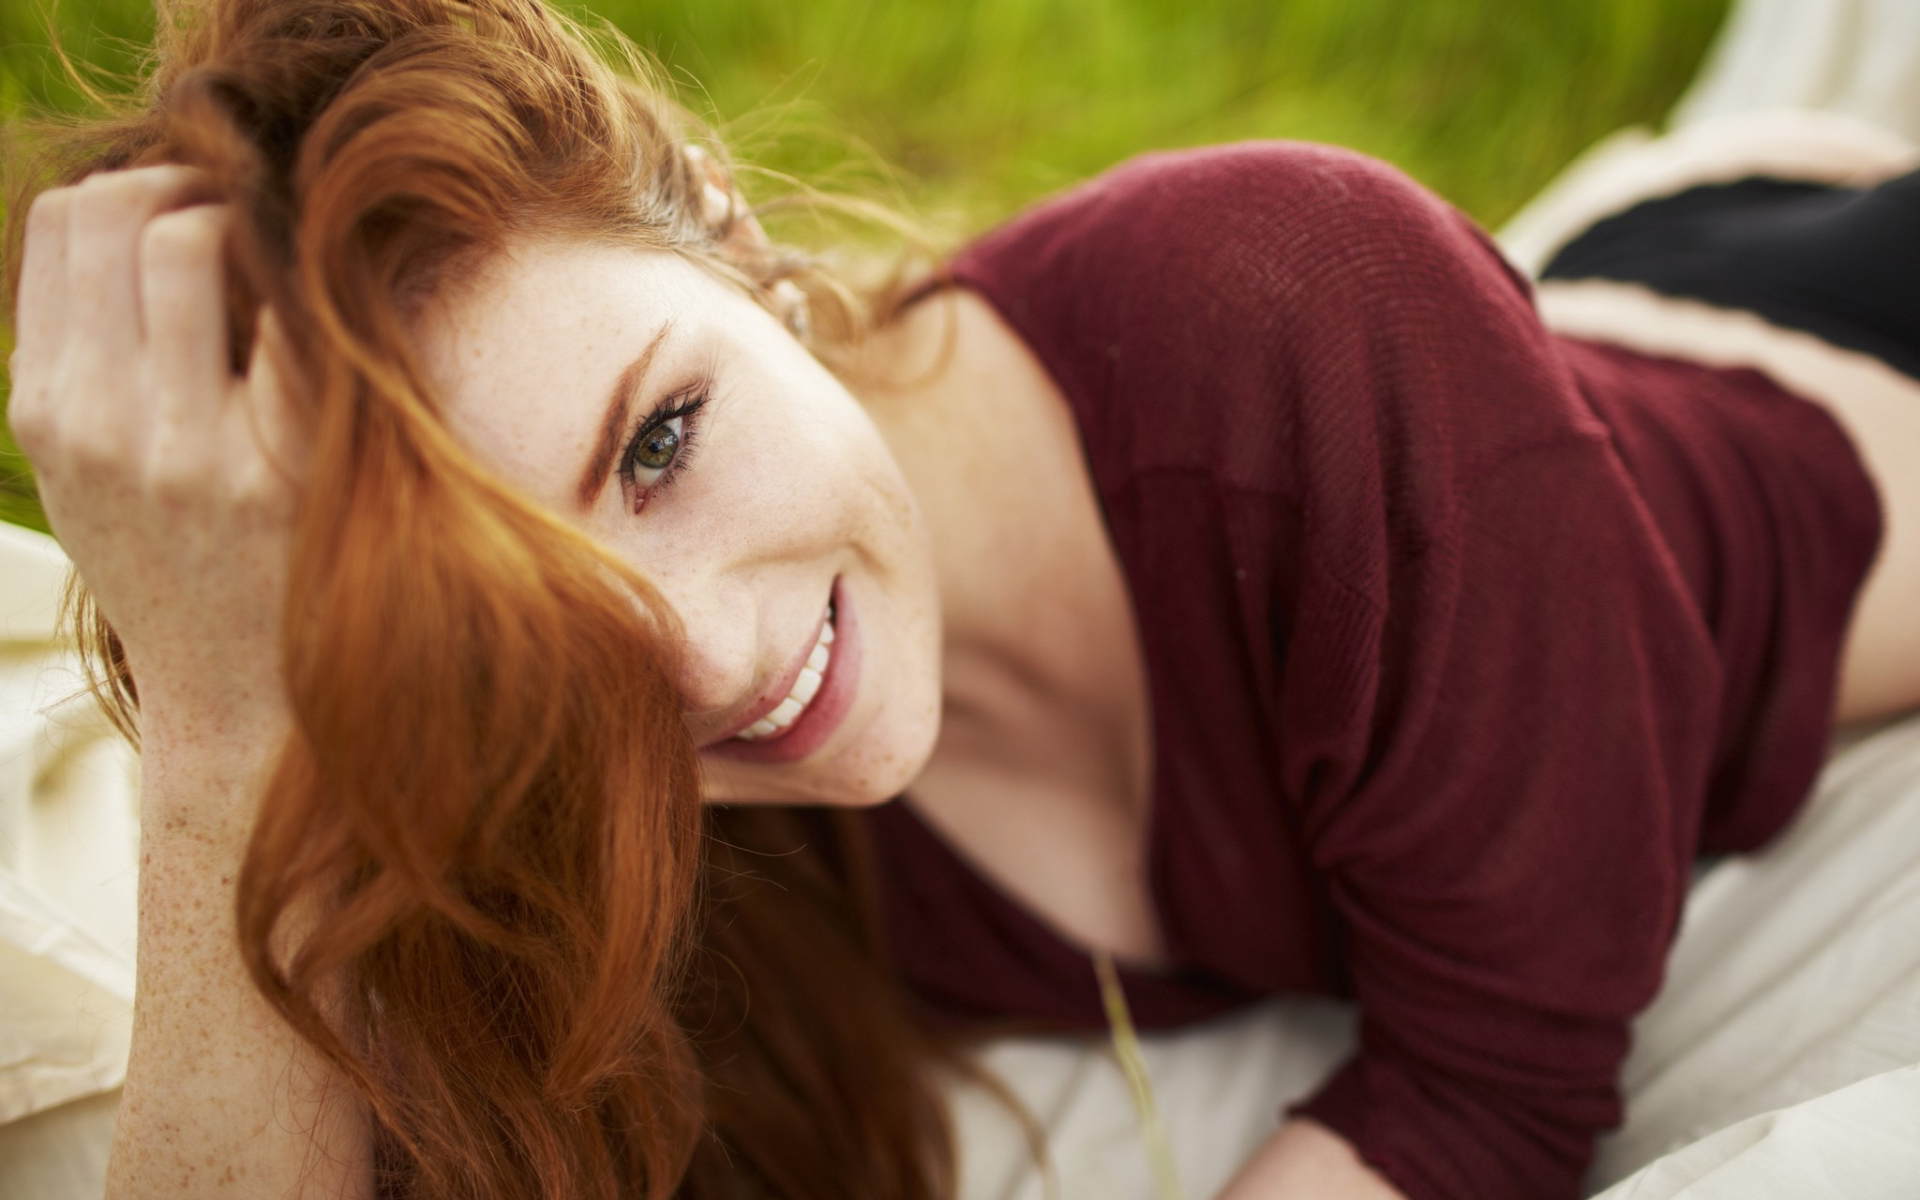 Freckled redhead girl smile